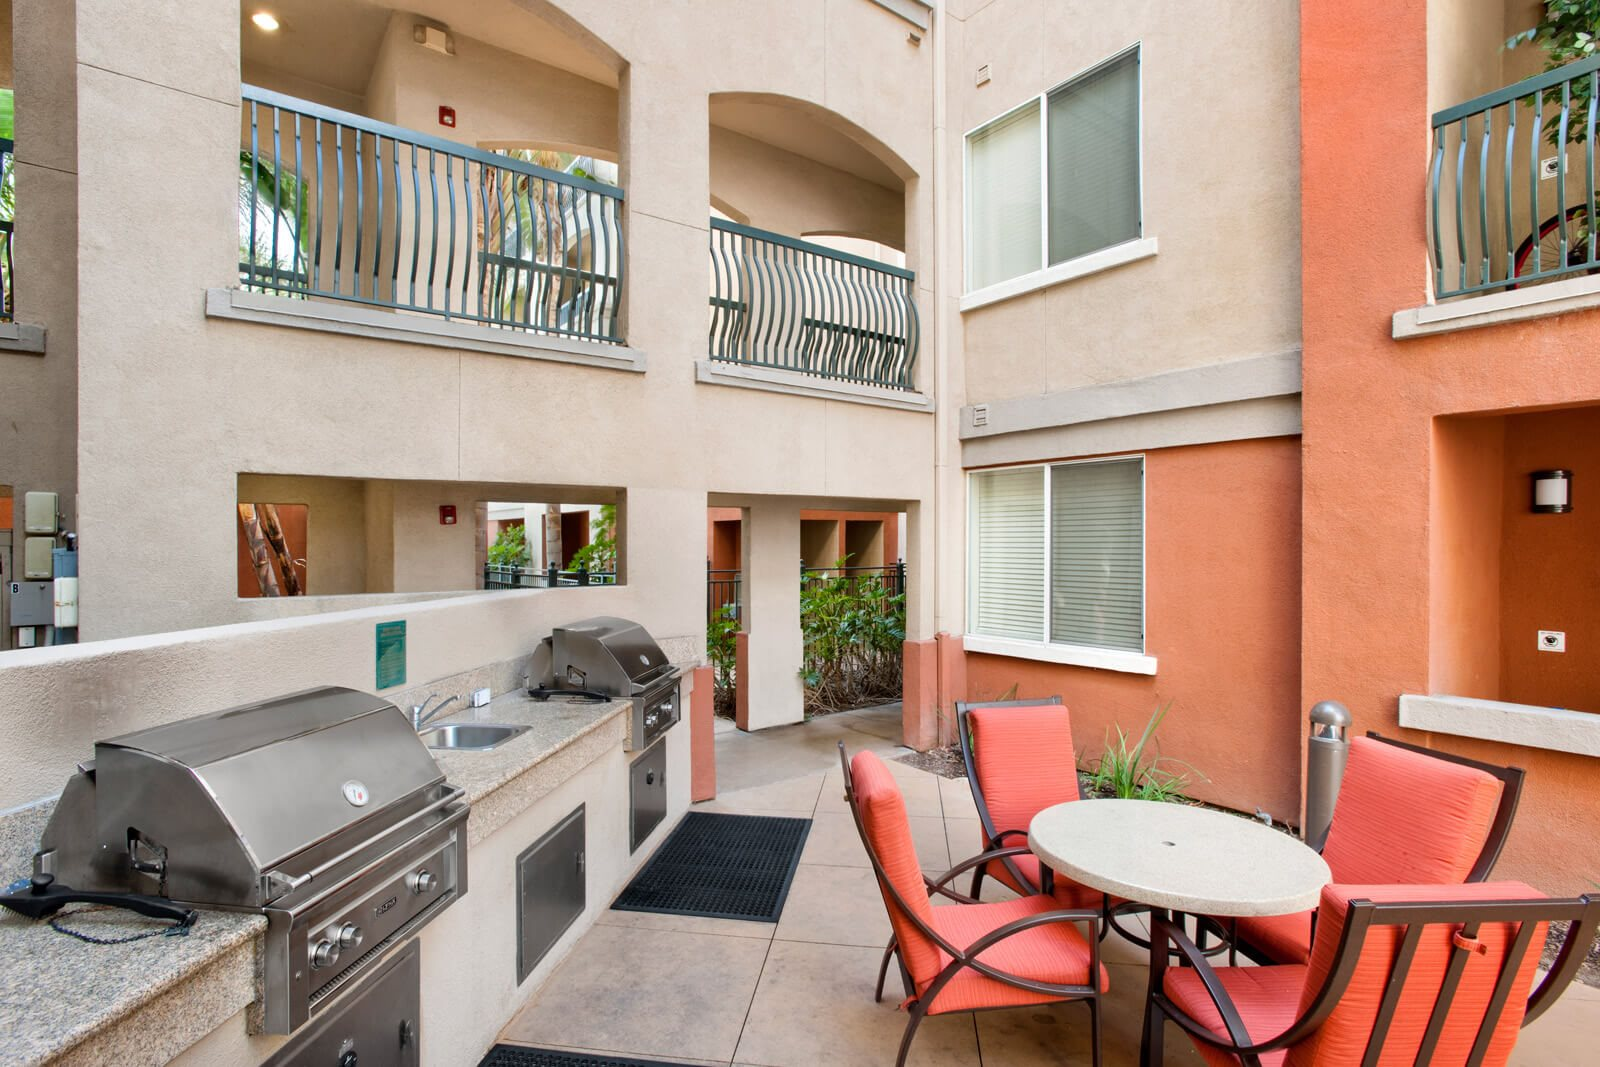 Community Grilling Stations and Outdoor Dining Area at Windsor at Main Place, Orange, 92868